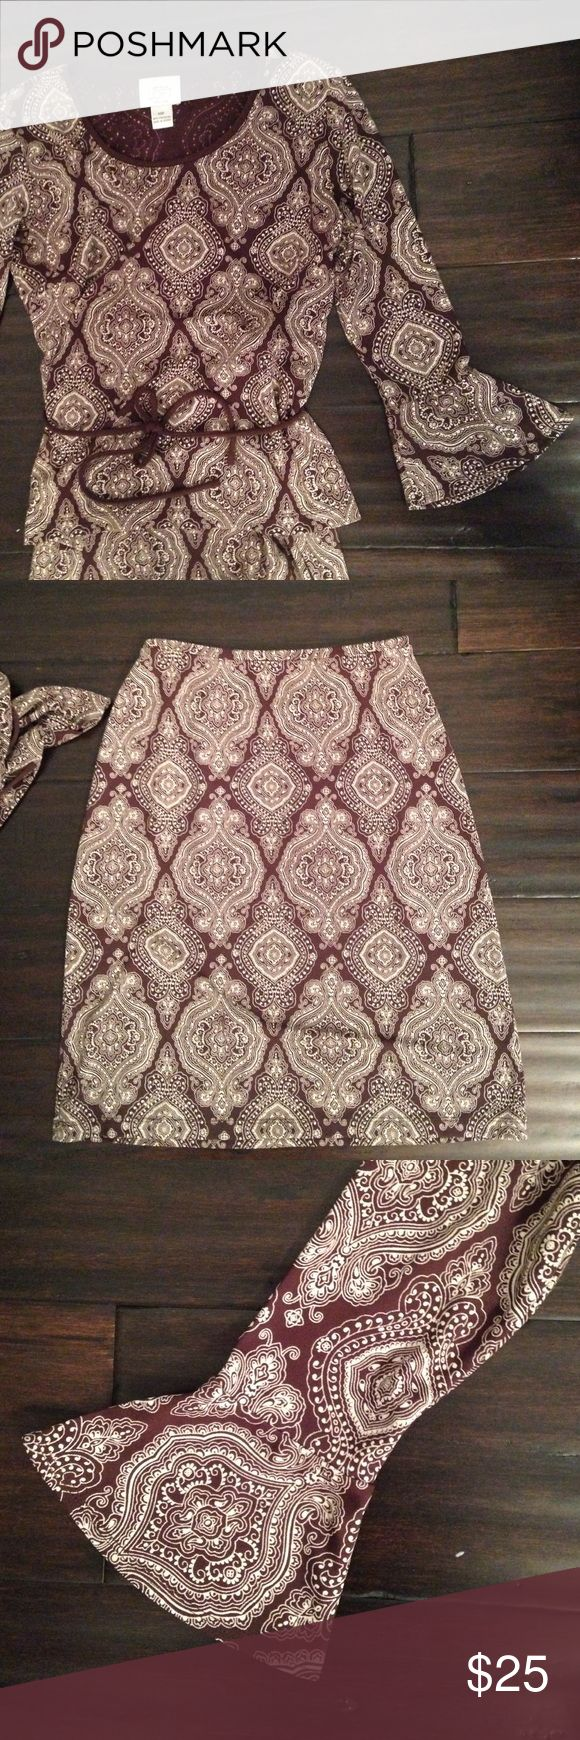 Ann Taylor Loft brown print skirt outfit - XSP 100% polyester, machine washable, CUTE brown and white skirt set. Shirt comes with belt and has adorable bell sleeve finished. Skirt is straight...easy outfit to throw on. LOFT Skirts Mini